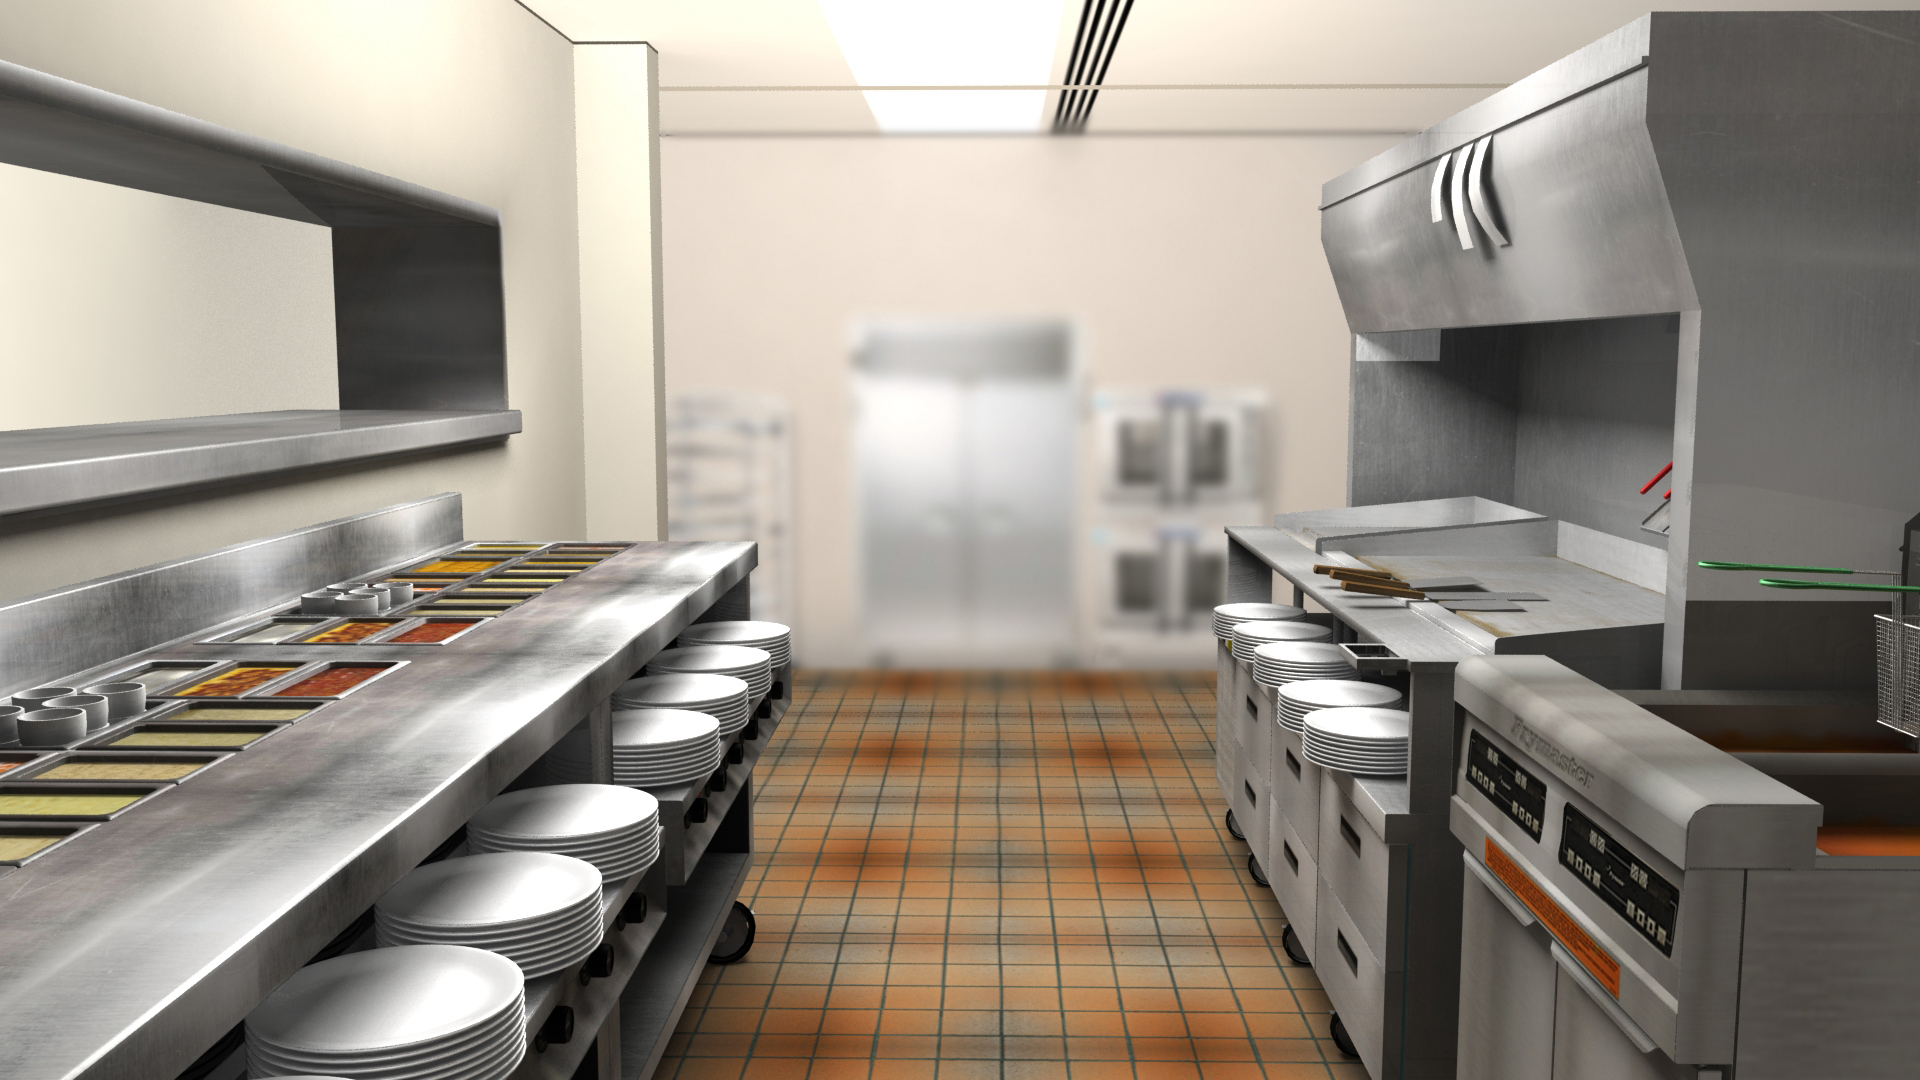 3D_Kitchen_Render_01_resized.jpg